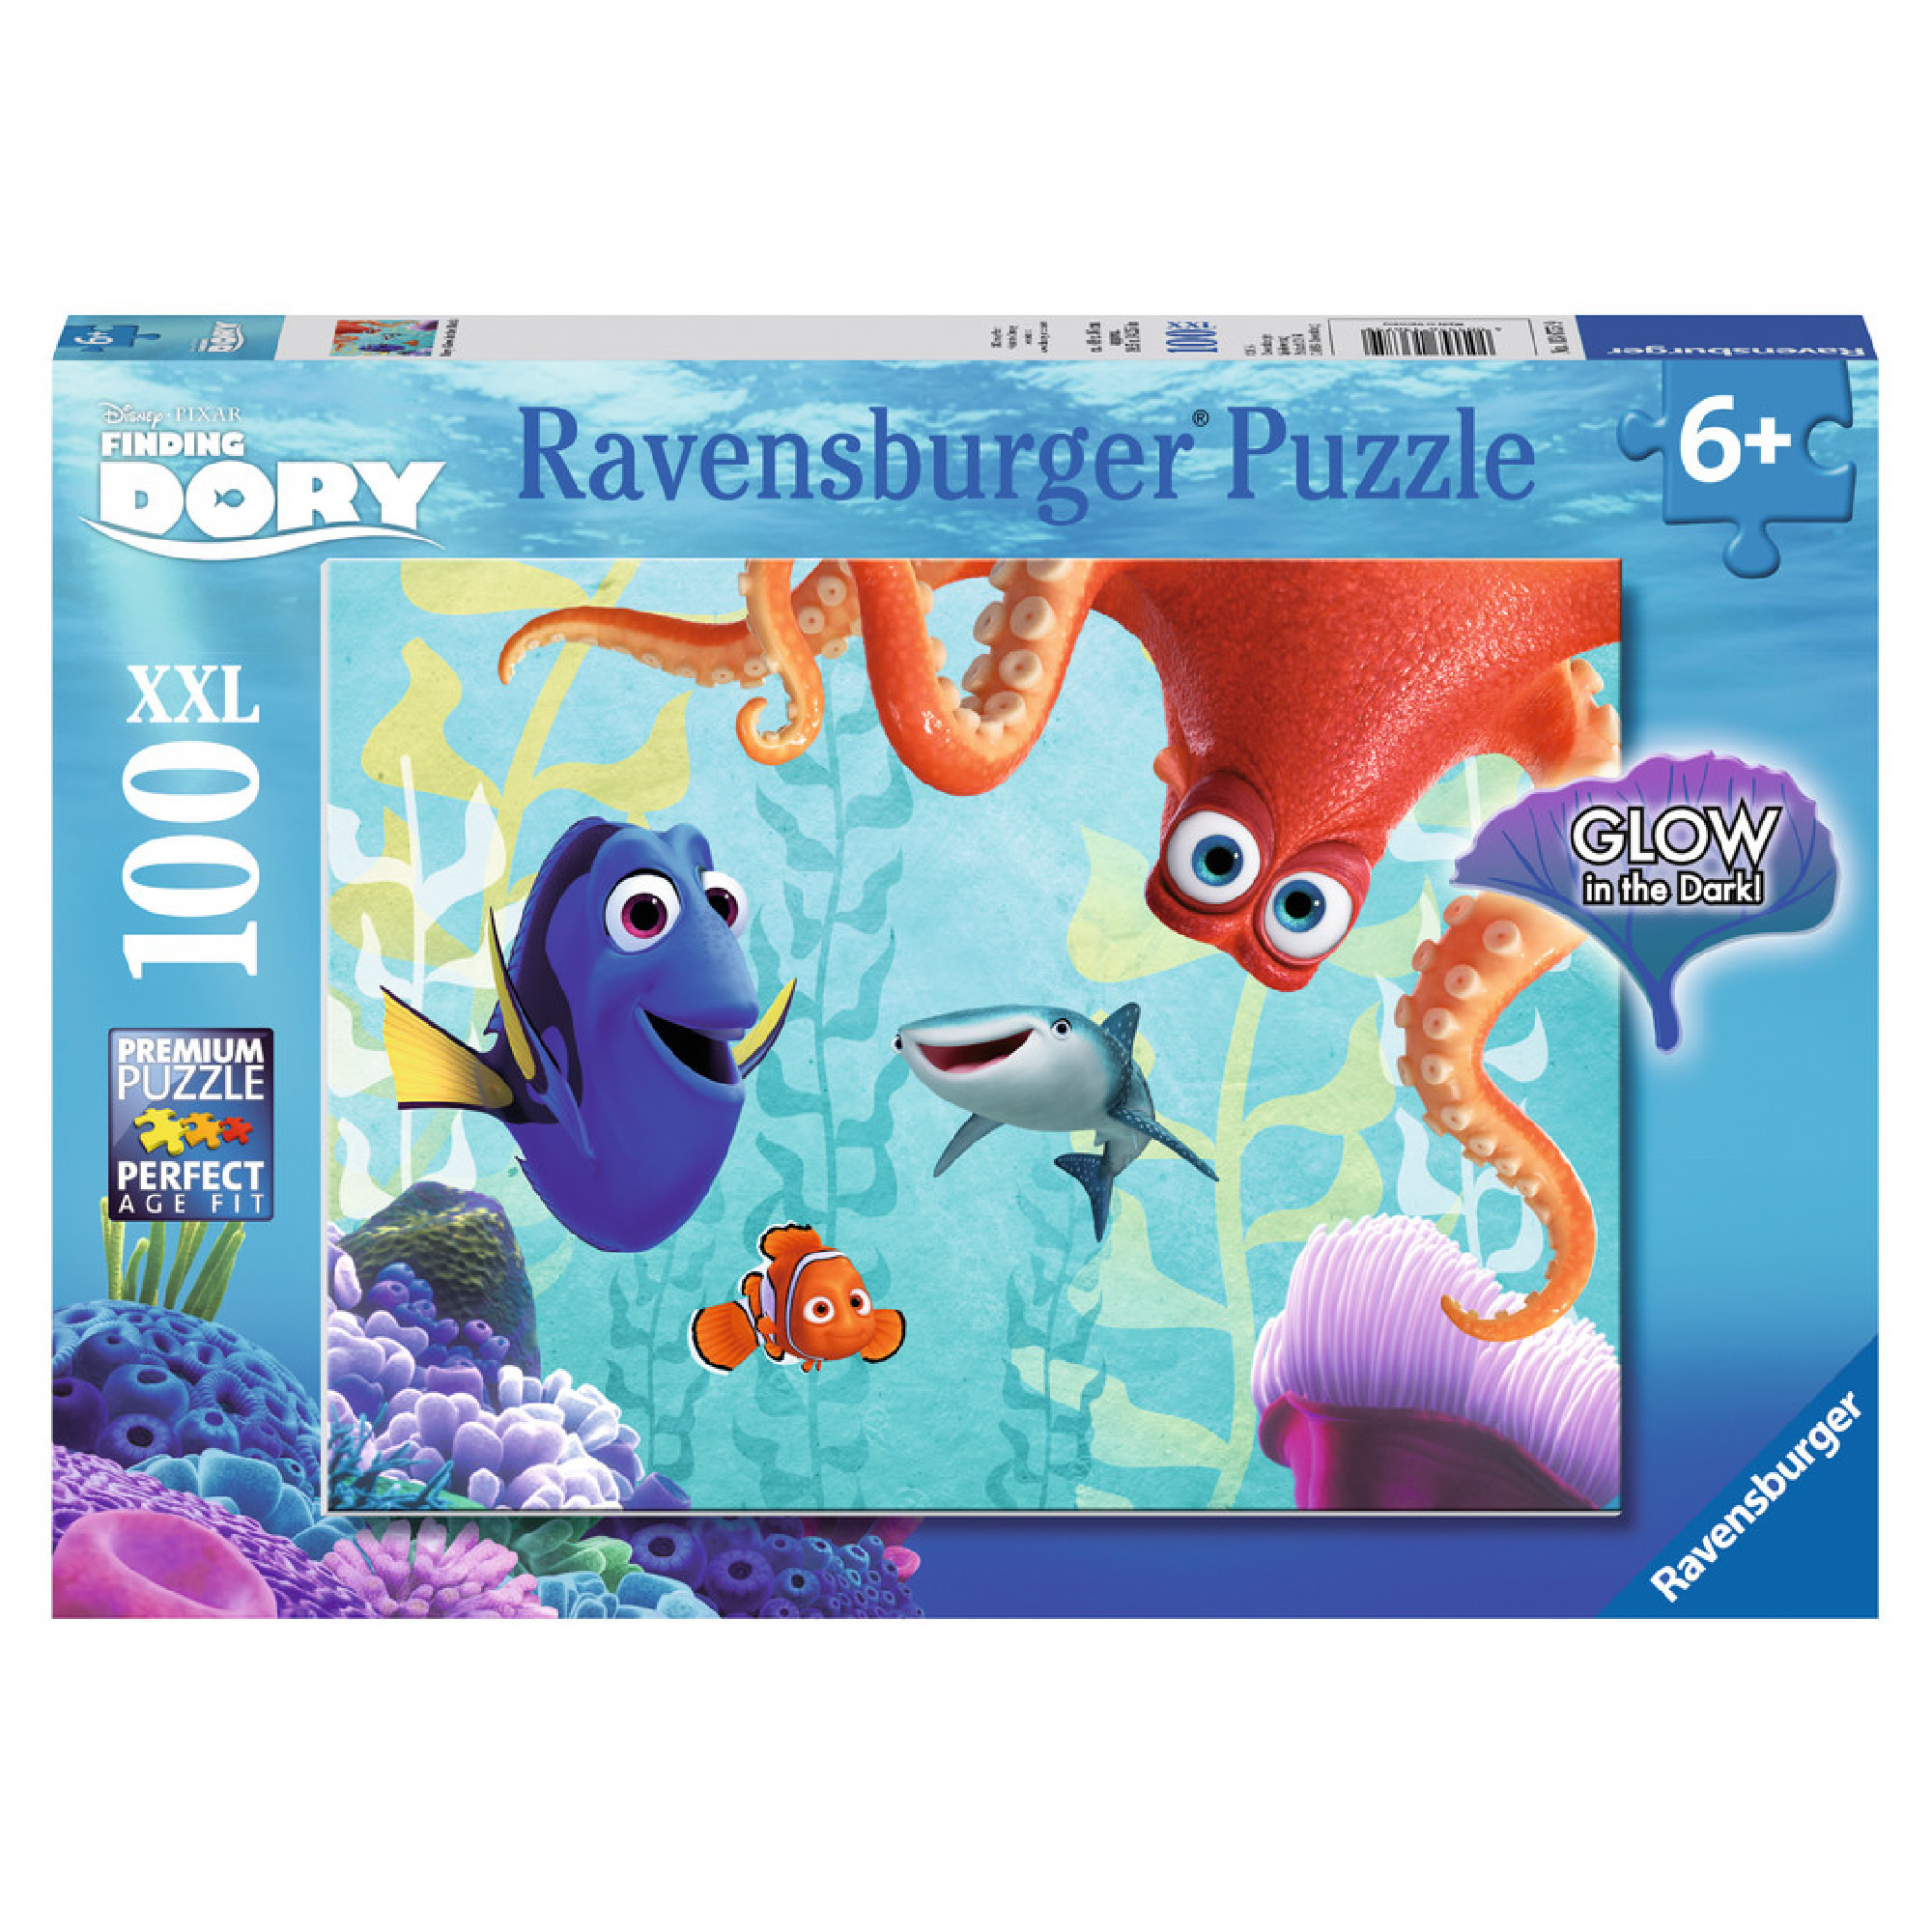 Ravensburger Puzzle 100 XXL: Dory, Glow in the Dark